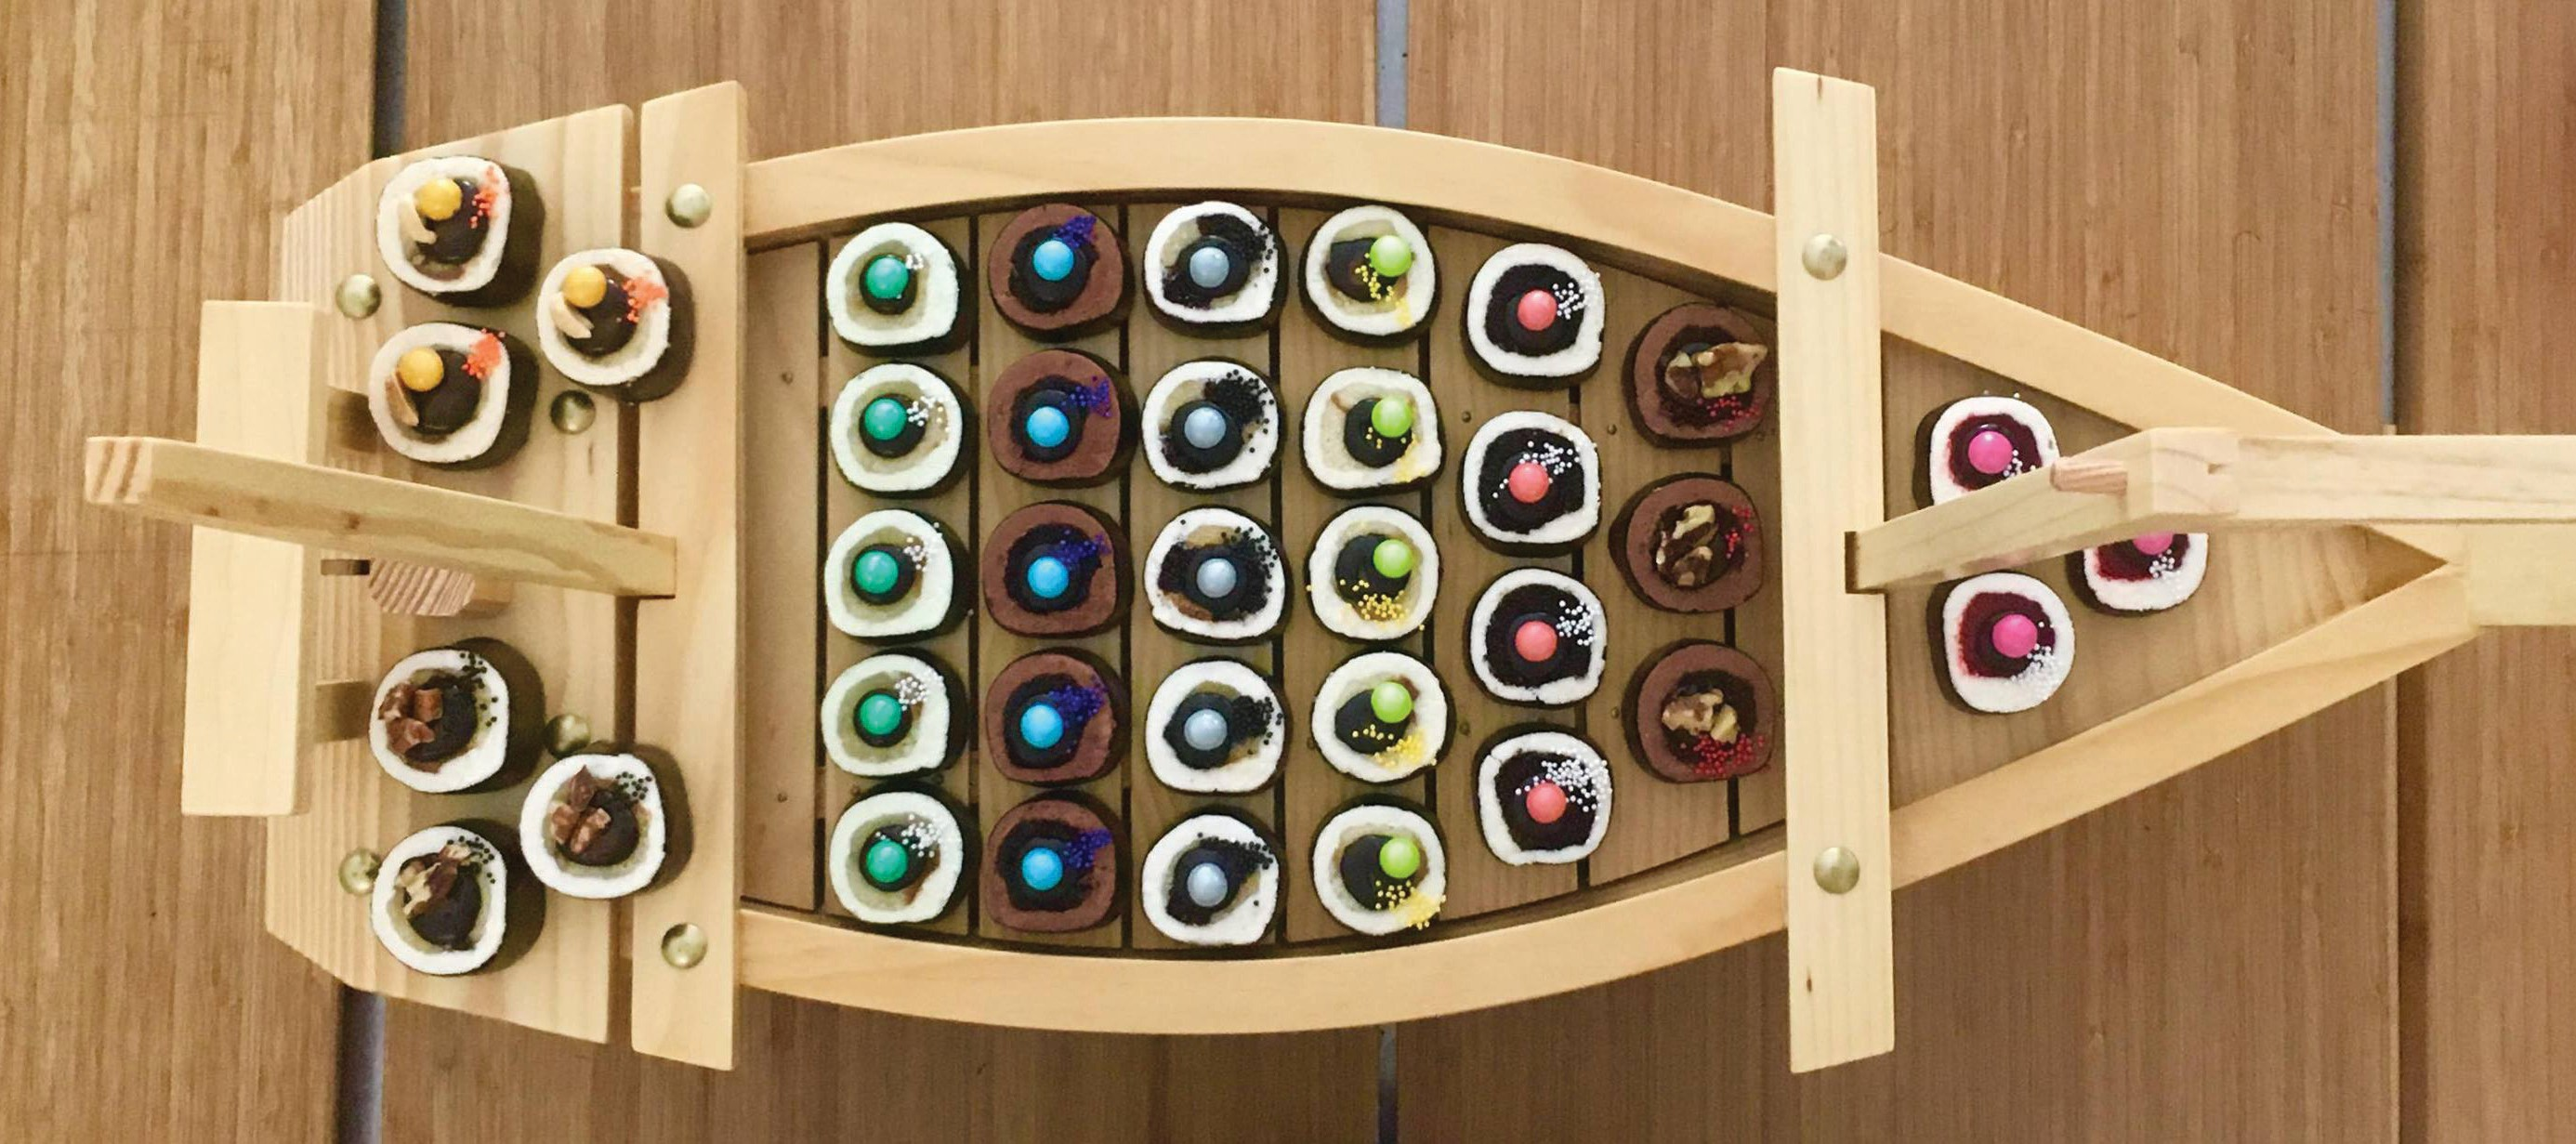 """Key West's own Cupcake Sushi is precisely what it sounds like — delectable, colorful """"sushi"""" rolls made of cake and frosting. COURTESY PHOTOS"""